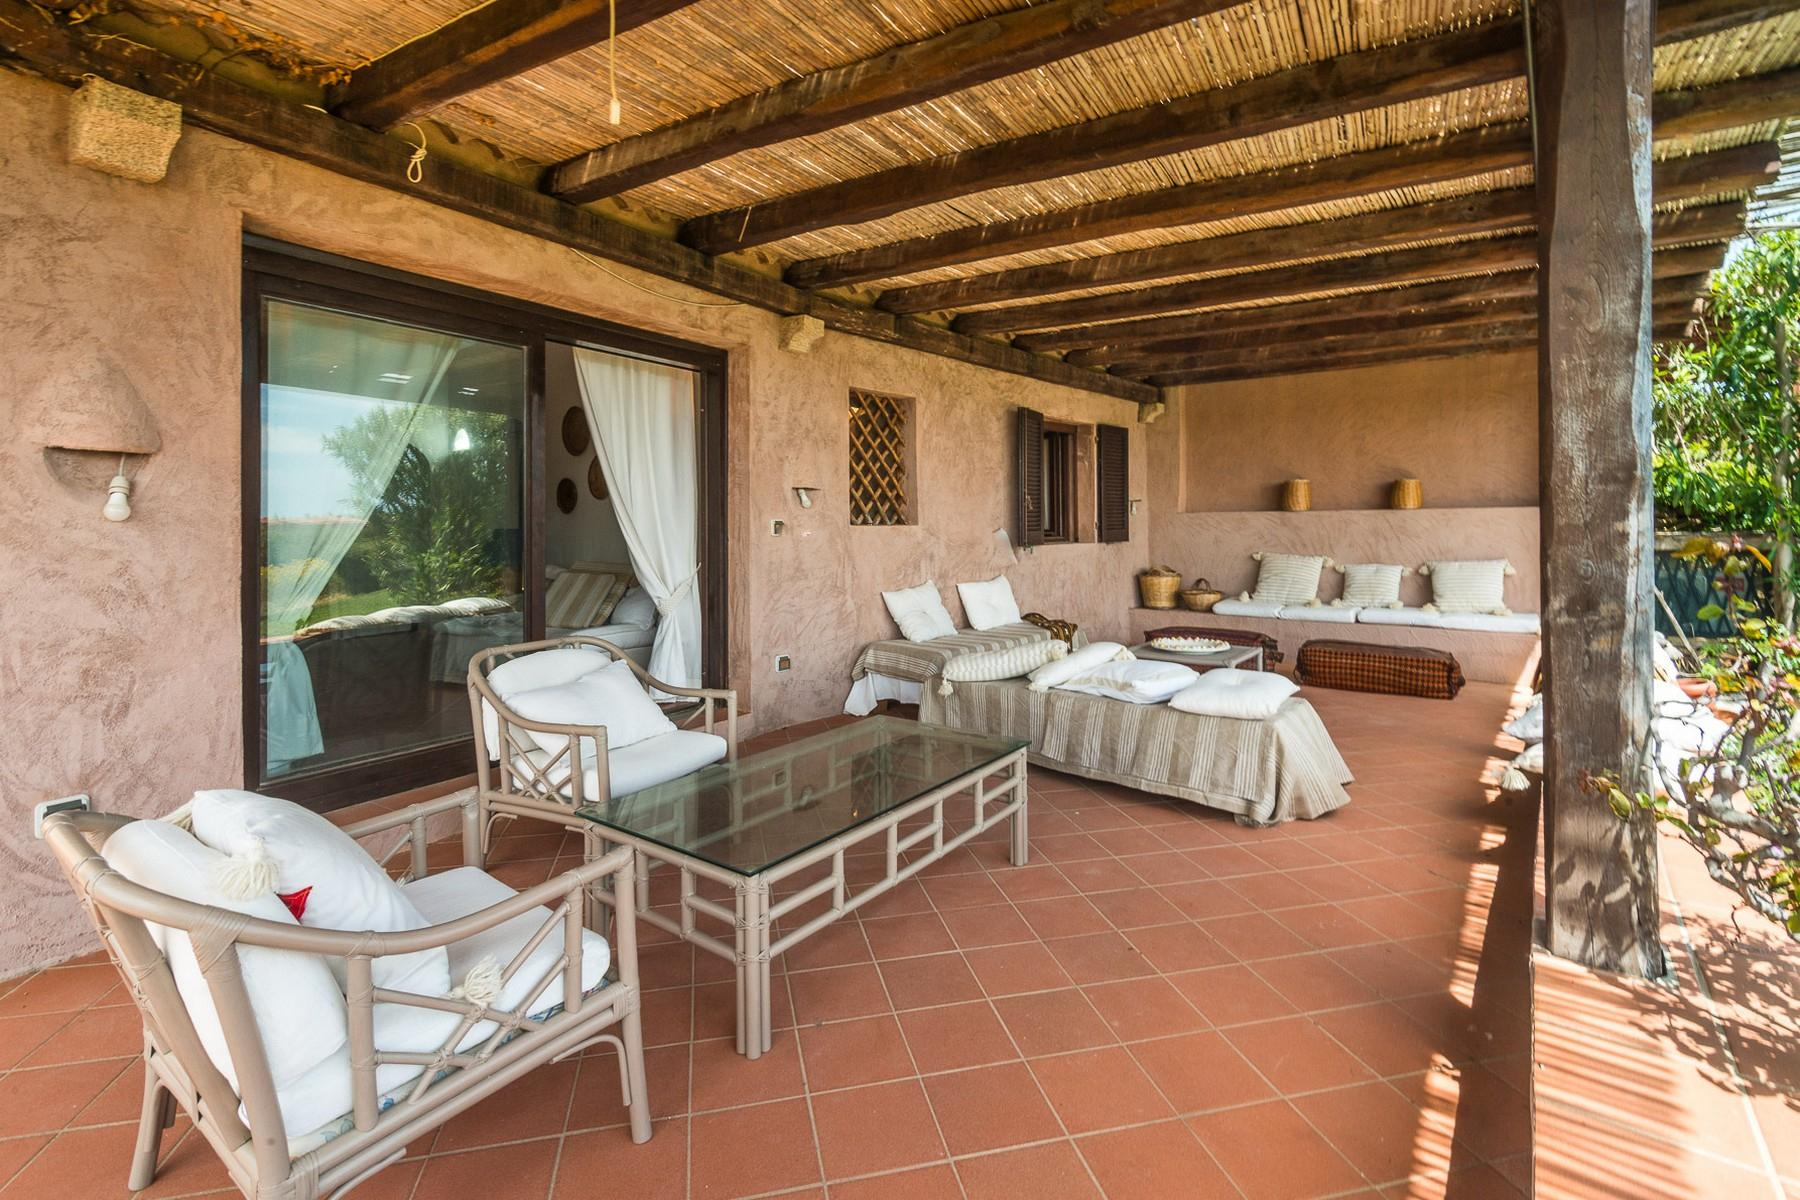 Porto Cervo Cala Granu Delightful Apartment a few steps from the beach - 5